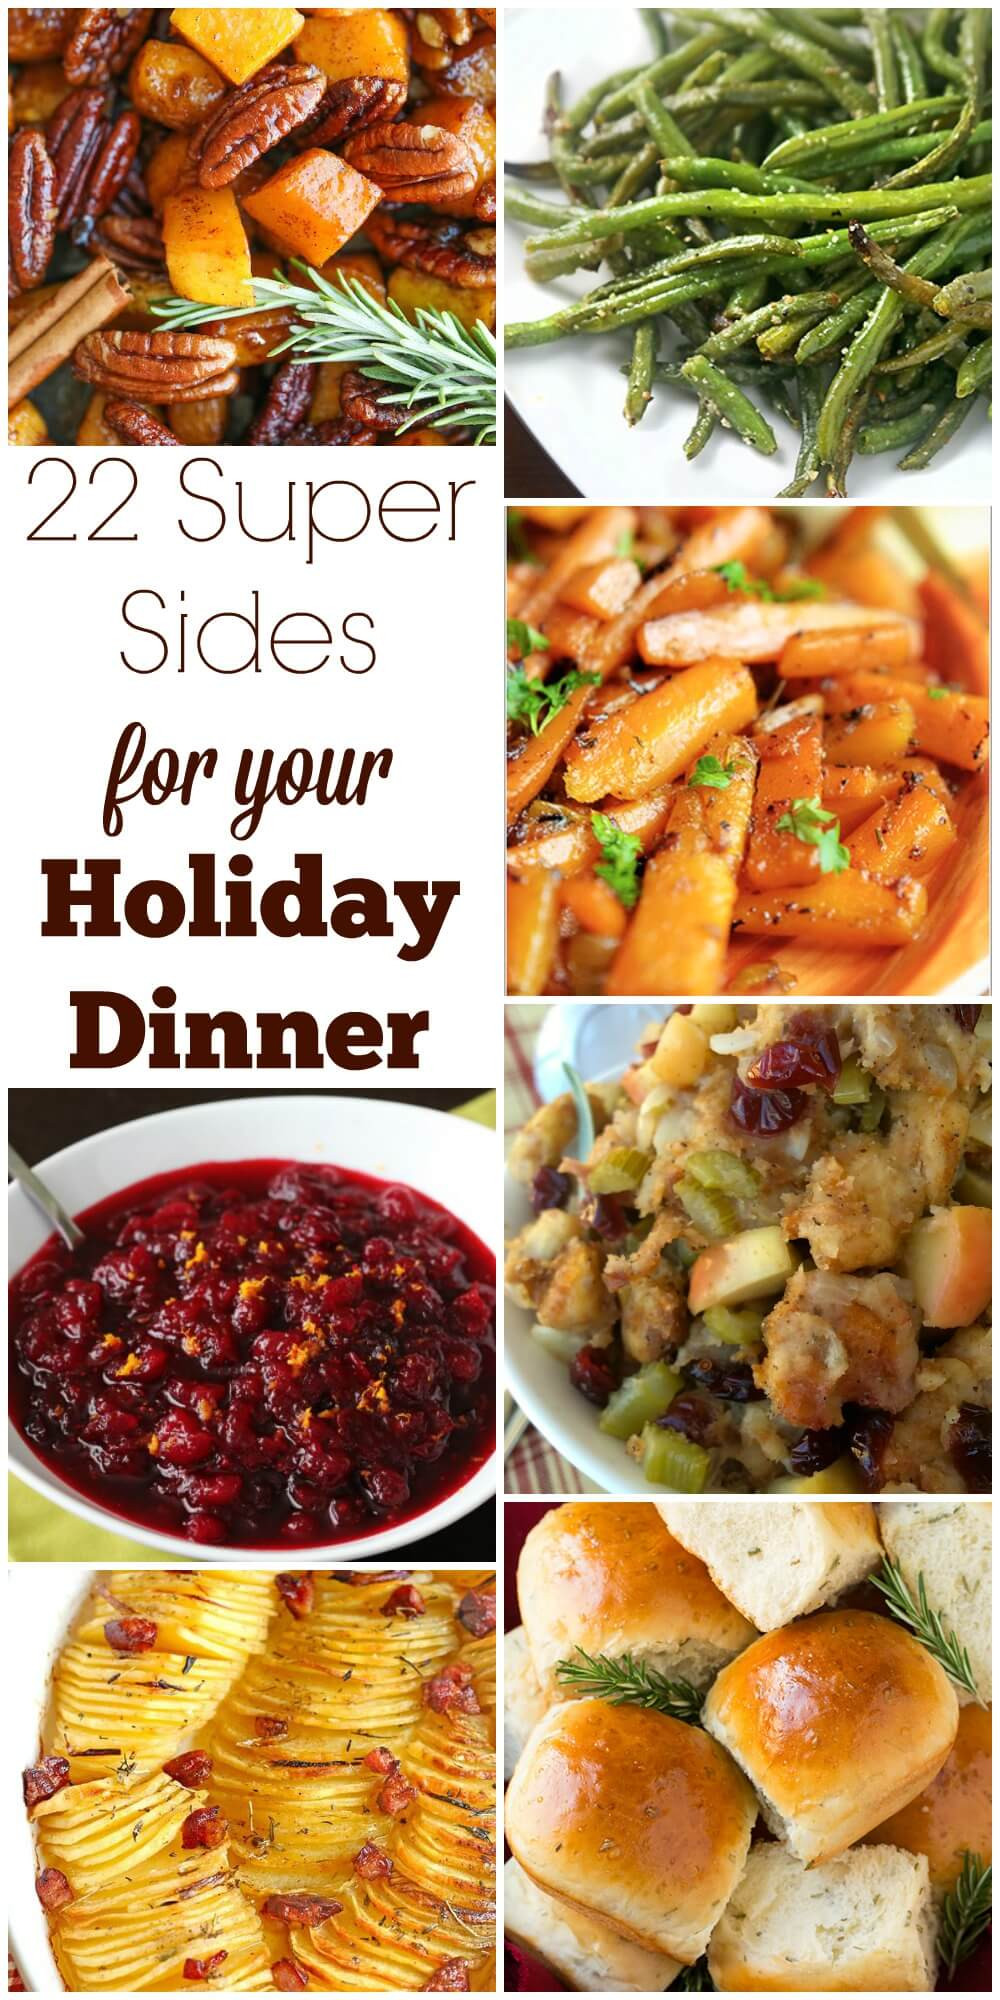 Sides For Christmas Dinner  22 Super Sides for Your Holiday Dinner